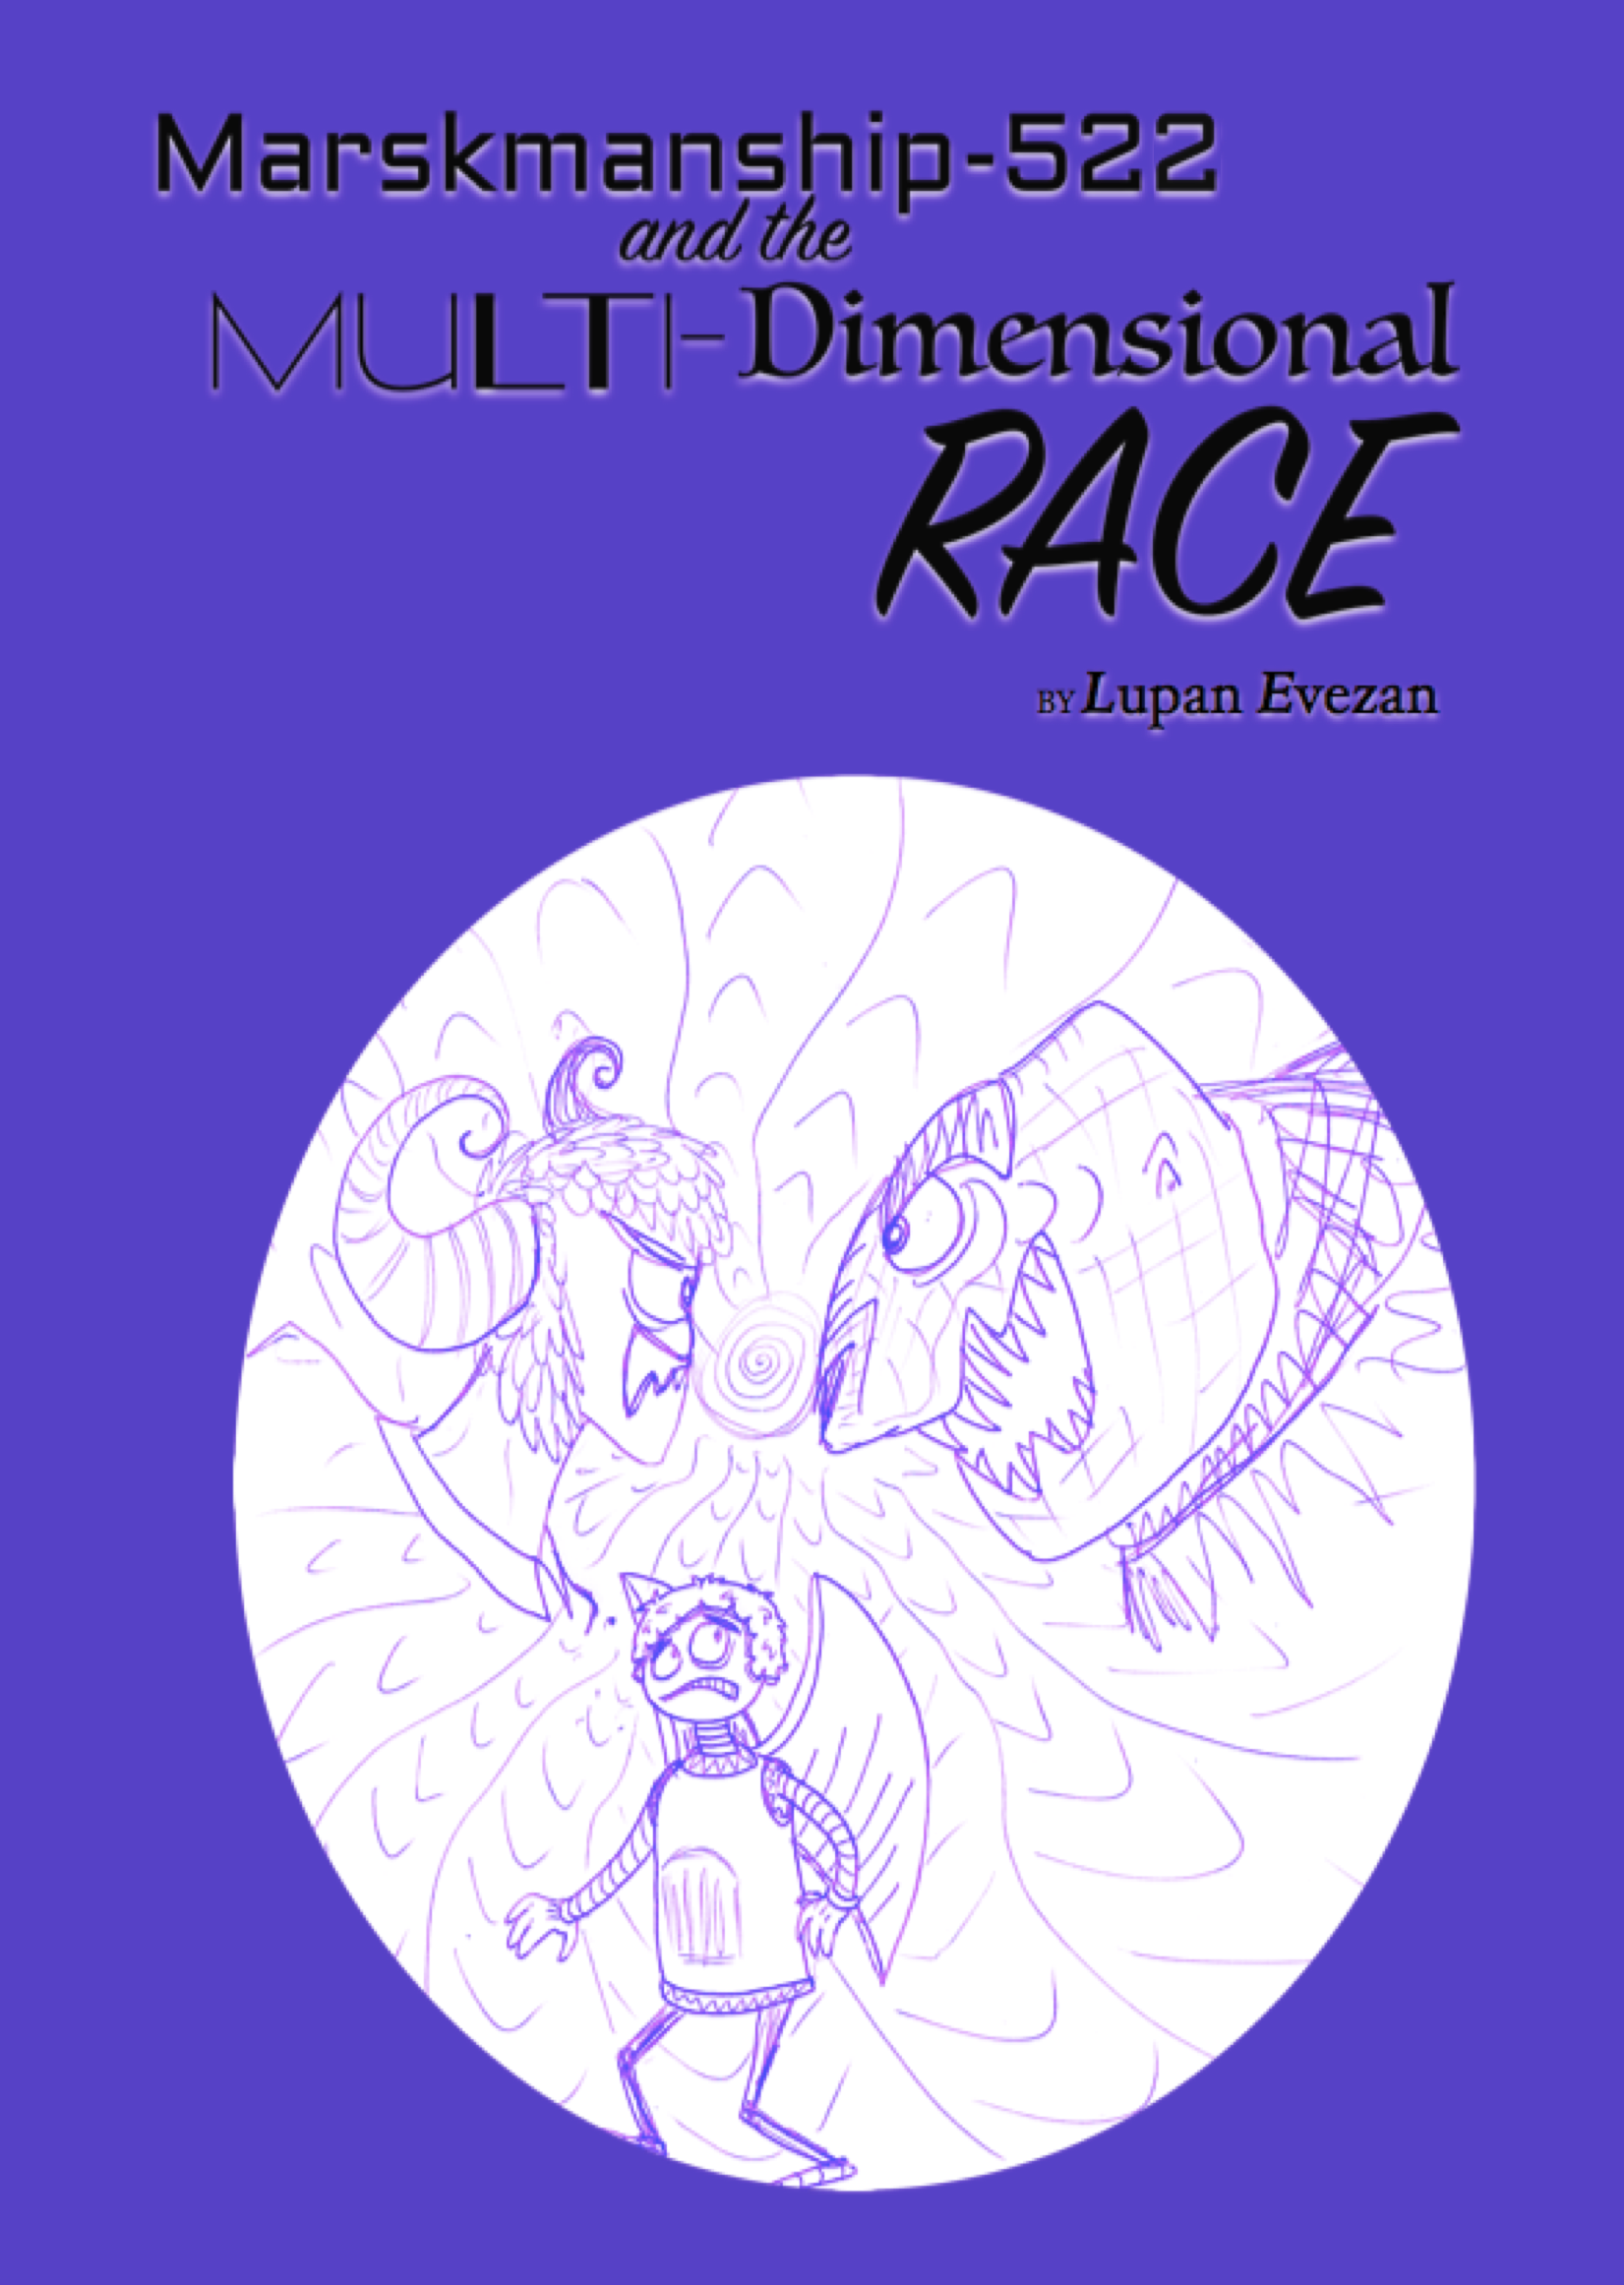 Marksmanship-522 and the Multi-Dimensional Race